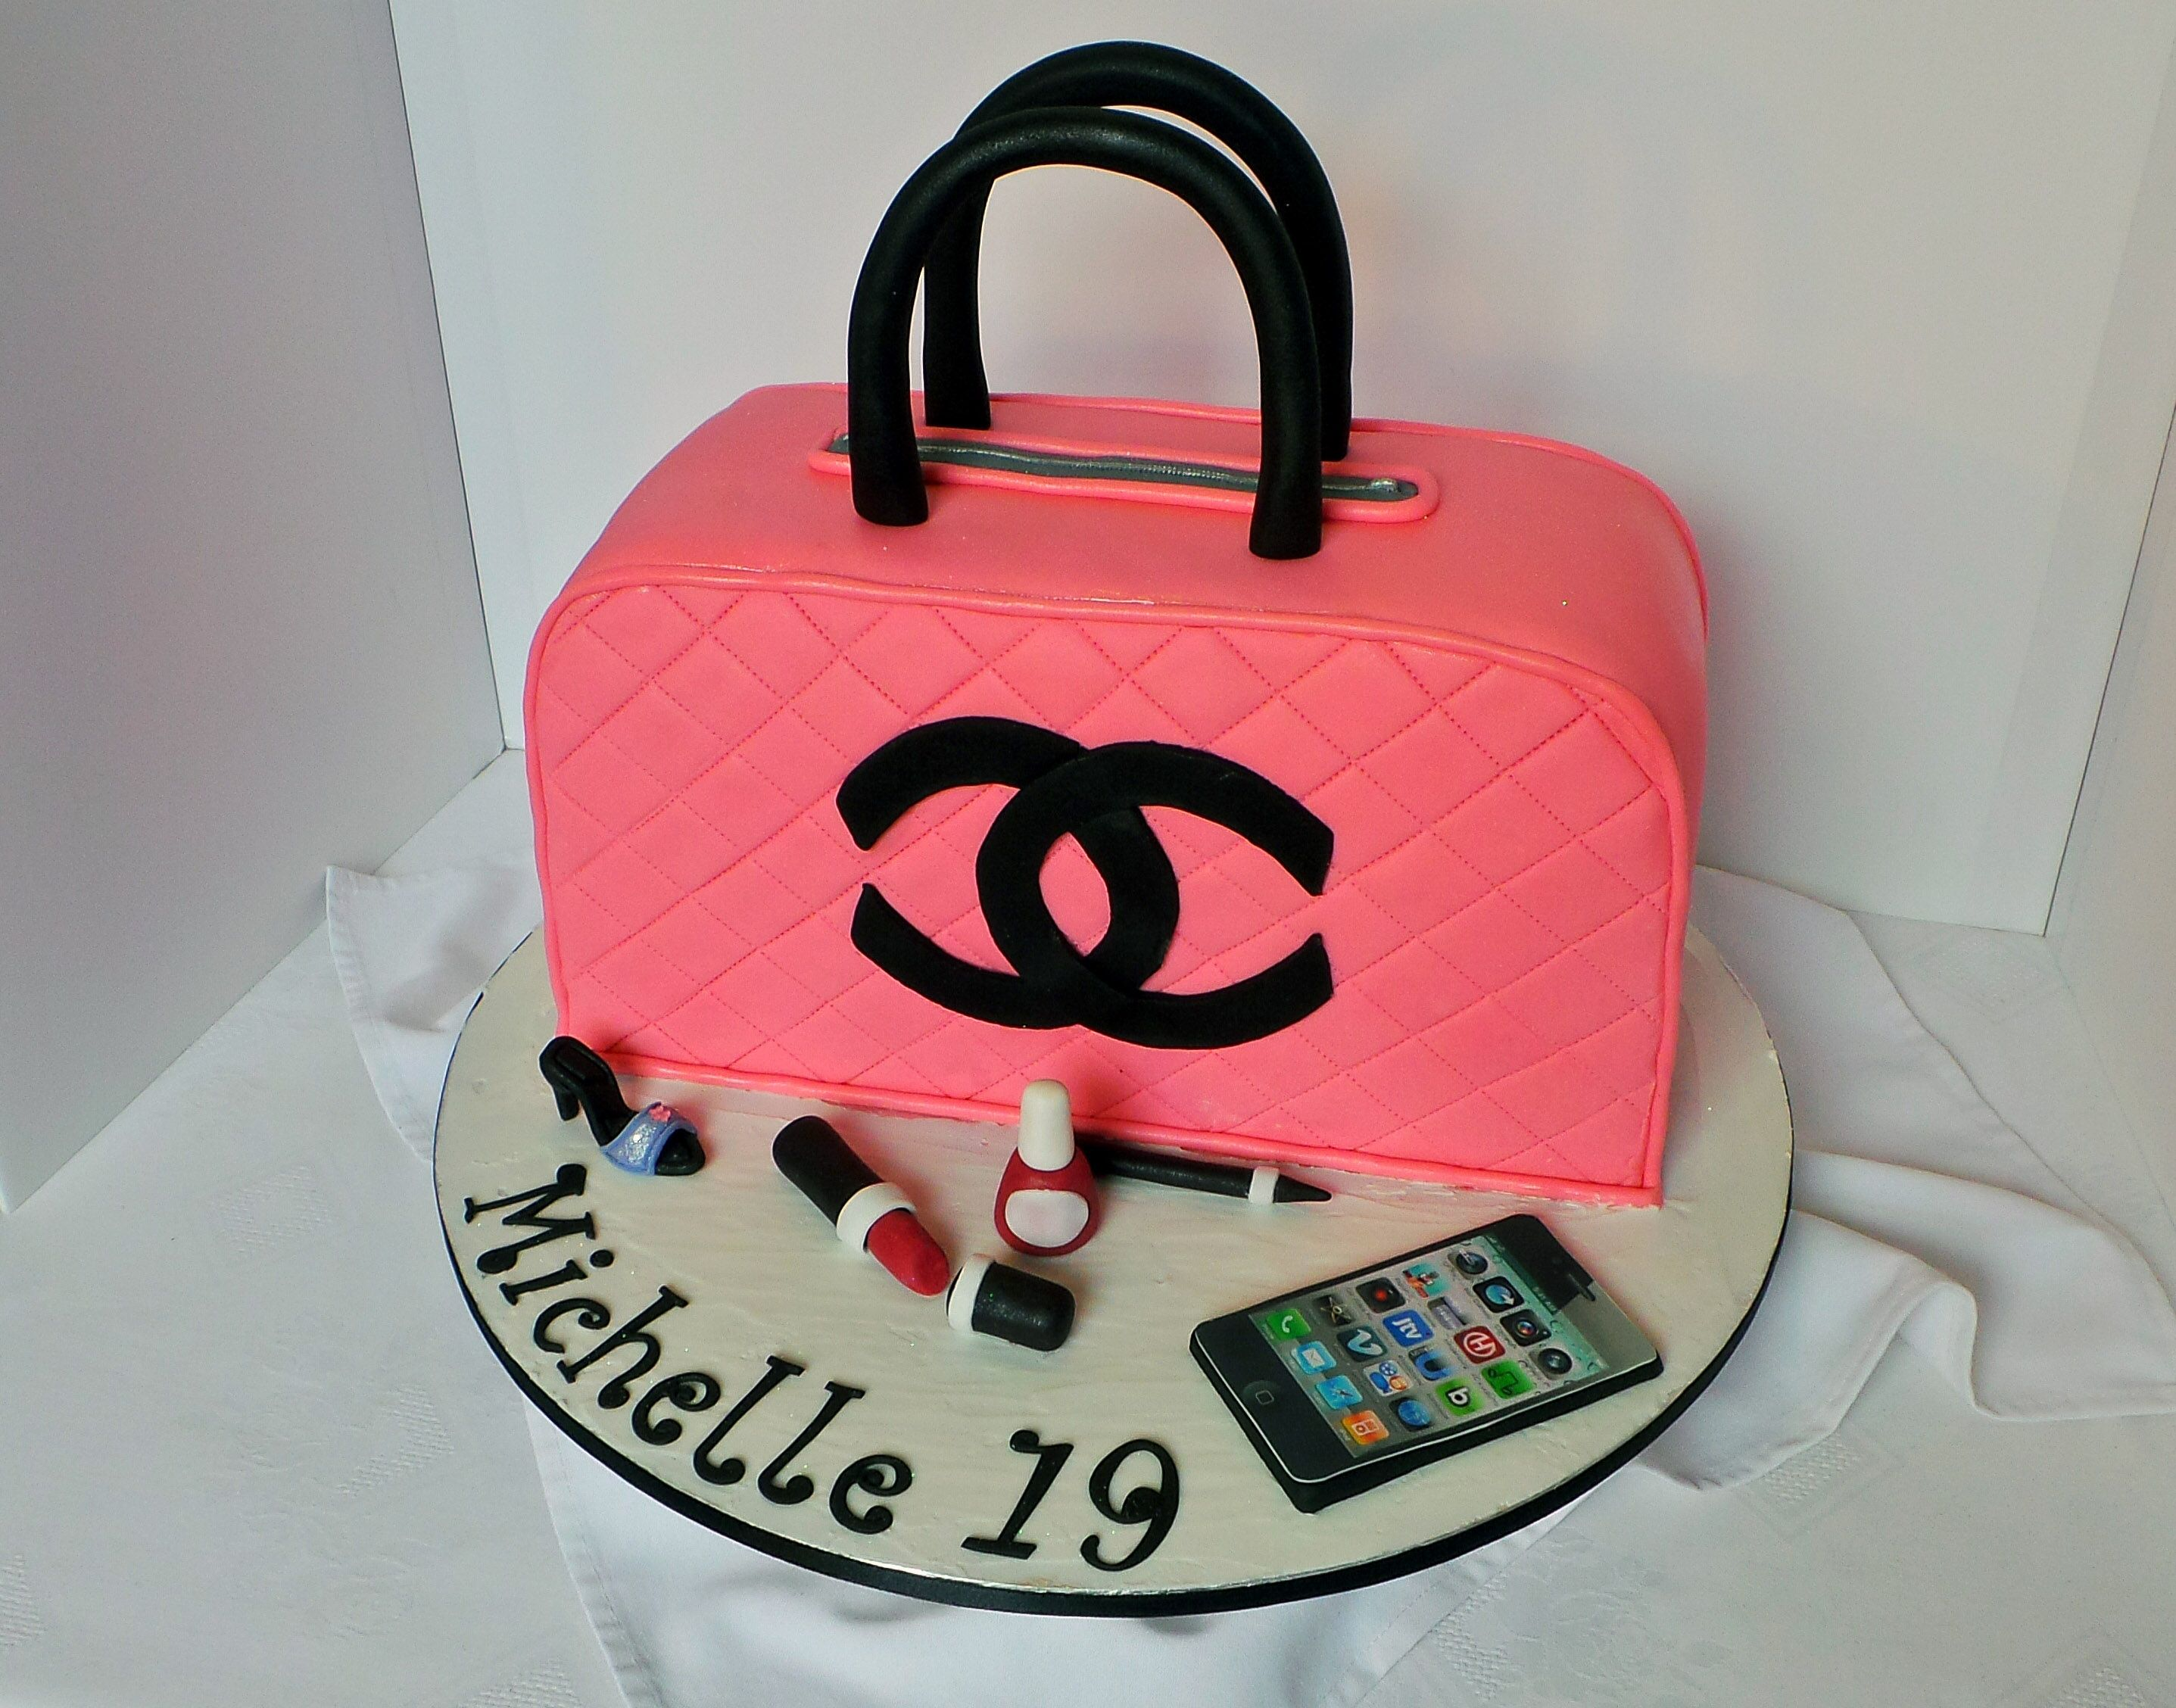 Chanel handbag with accessories themed birthday cake ...